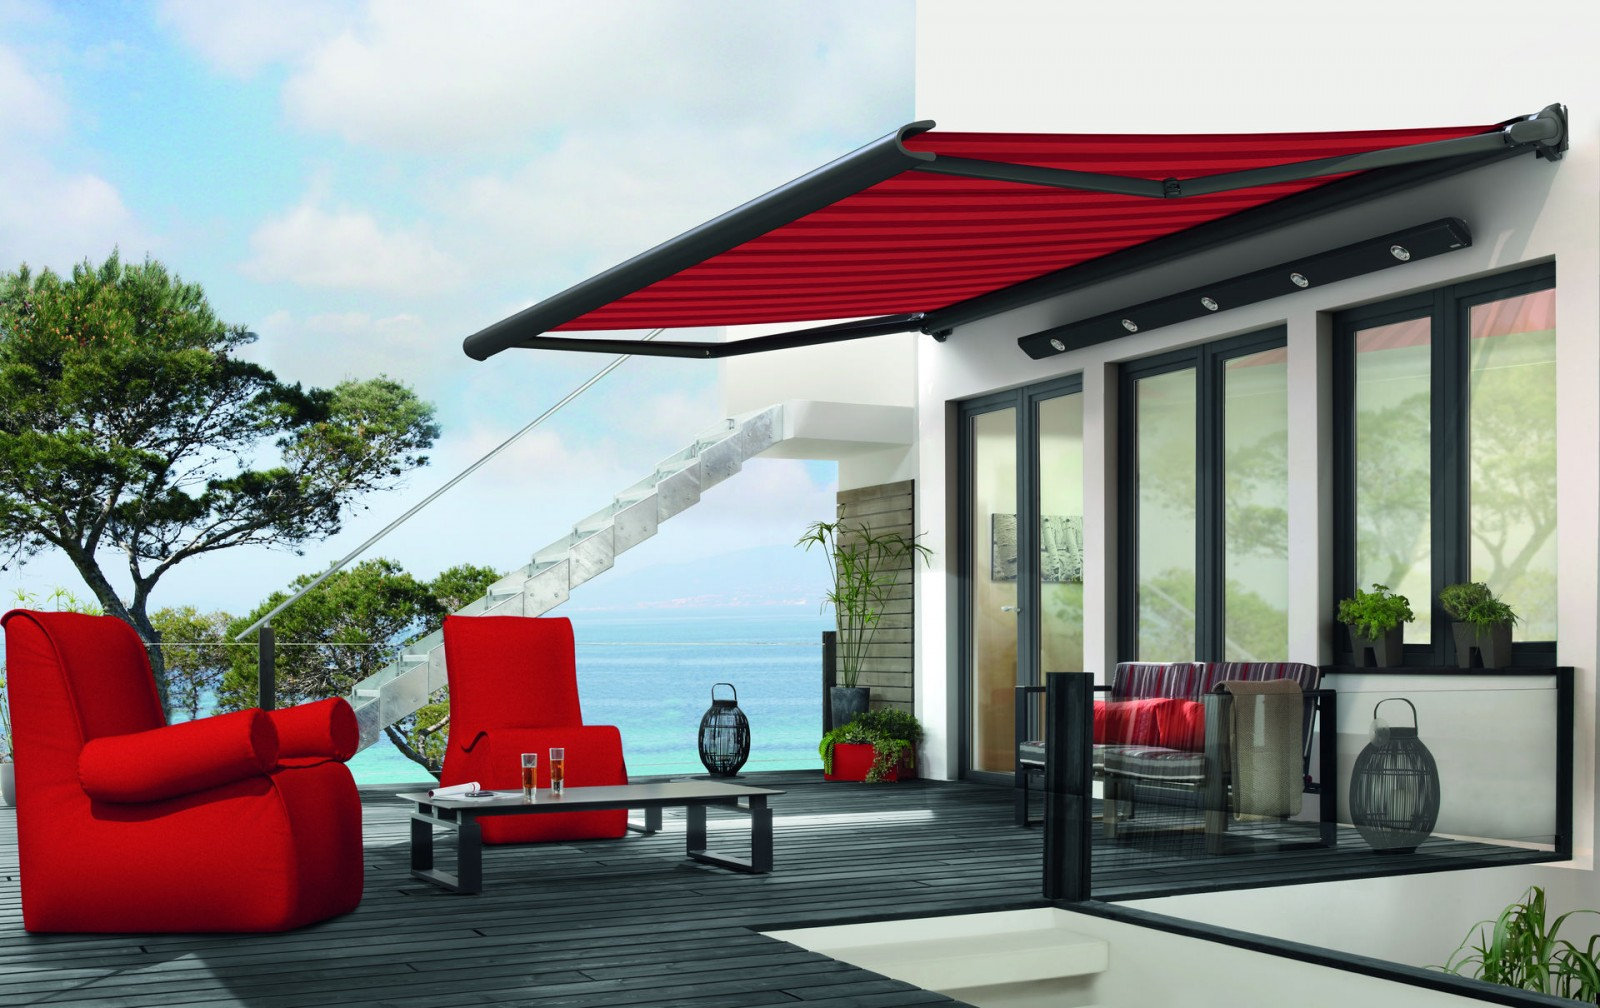 990 Markilux Awning - Red - Supplied and Fitted by Awningsouth - Hampshire, Surrey, London